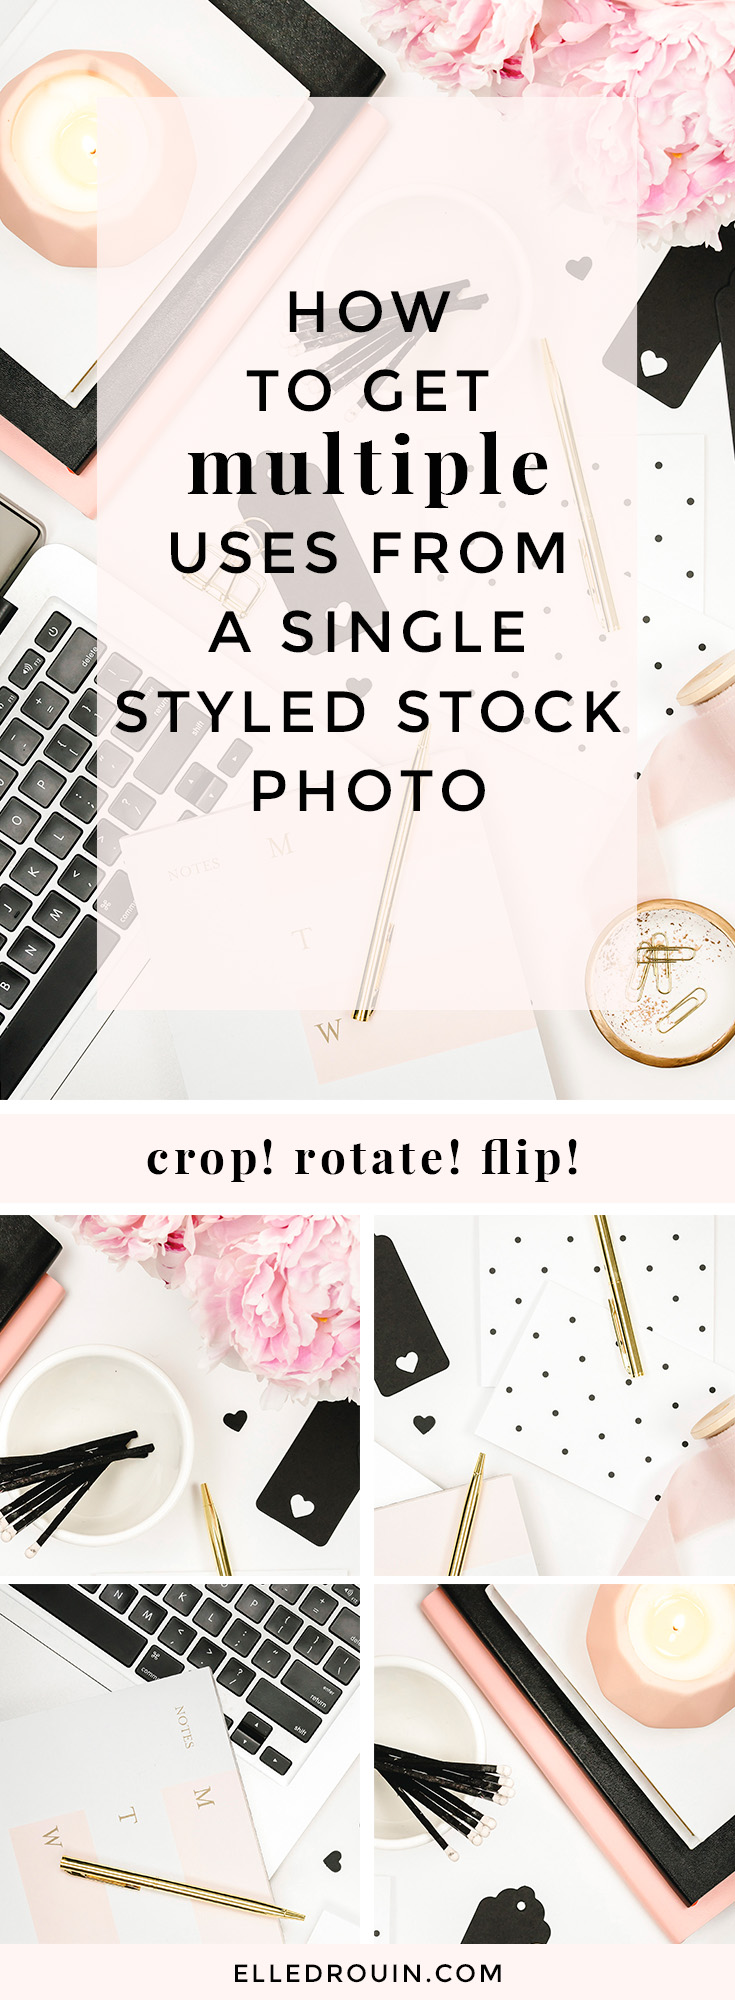 How to Get Multiple Uses From One Stock Photo